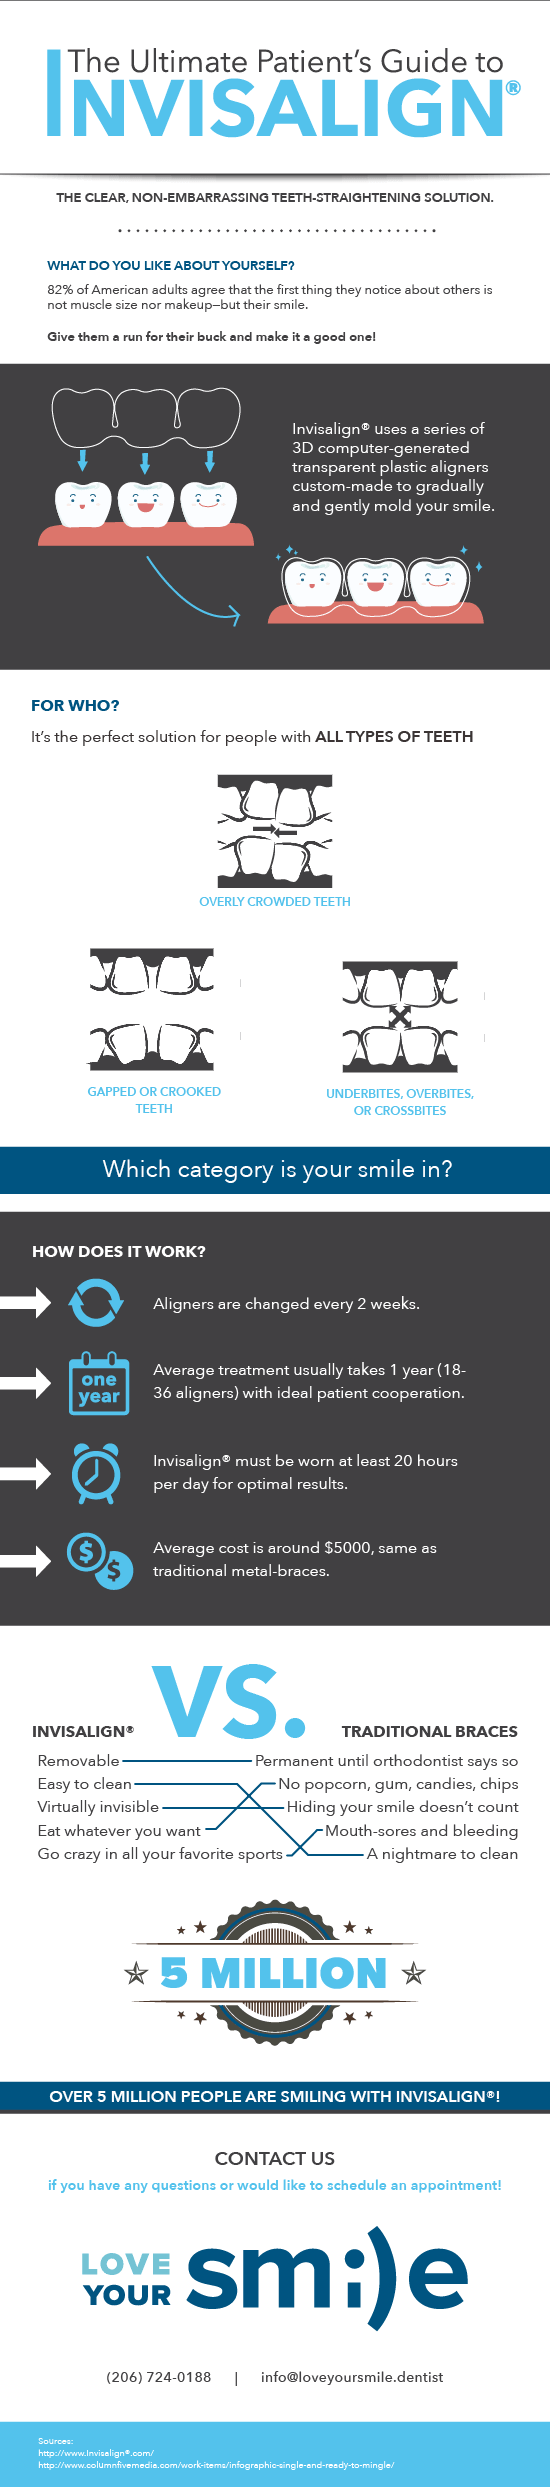 Infographic called the The Ultimate Patient's Guide to Invisalign